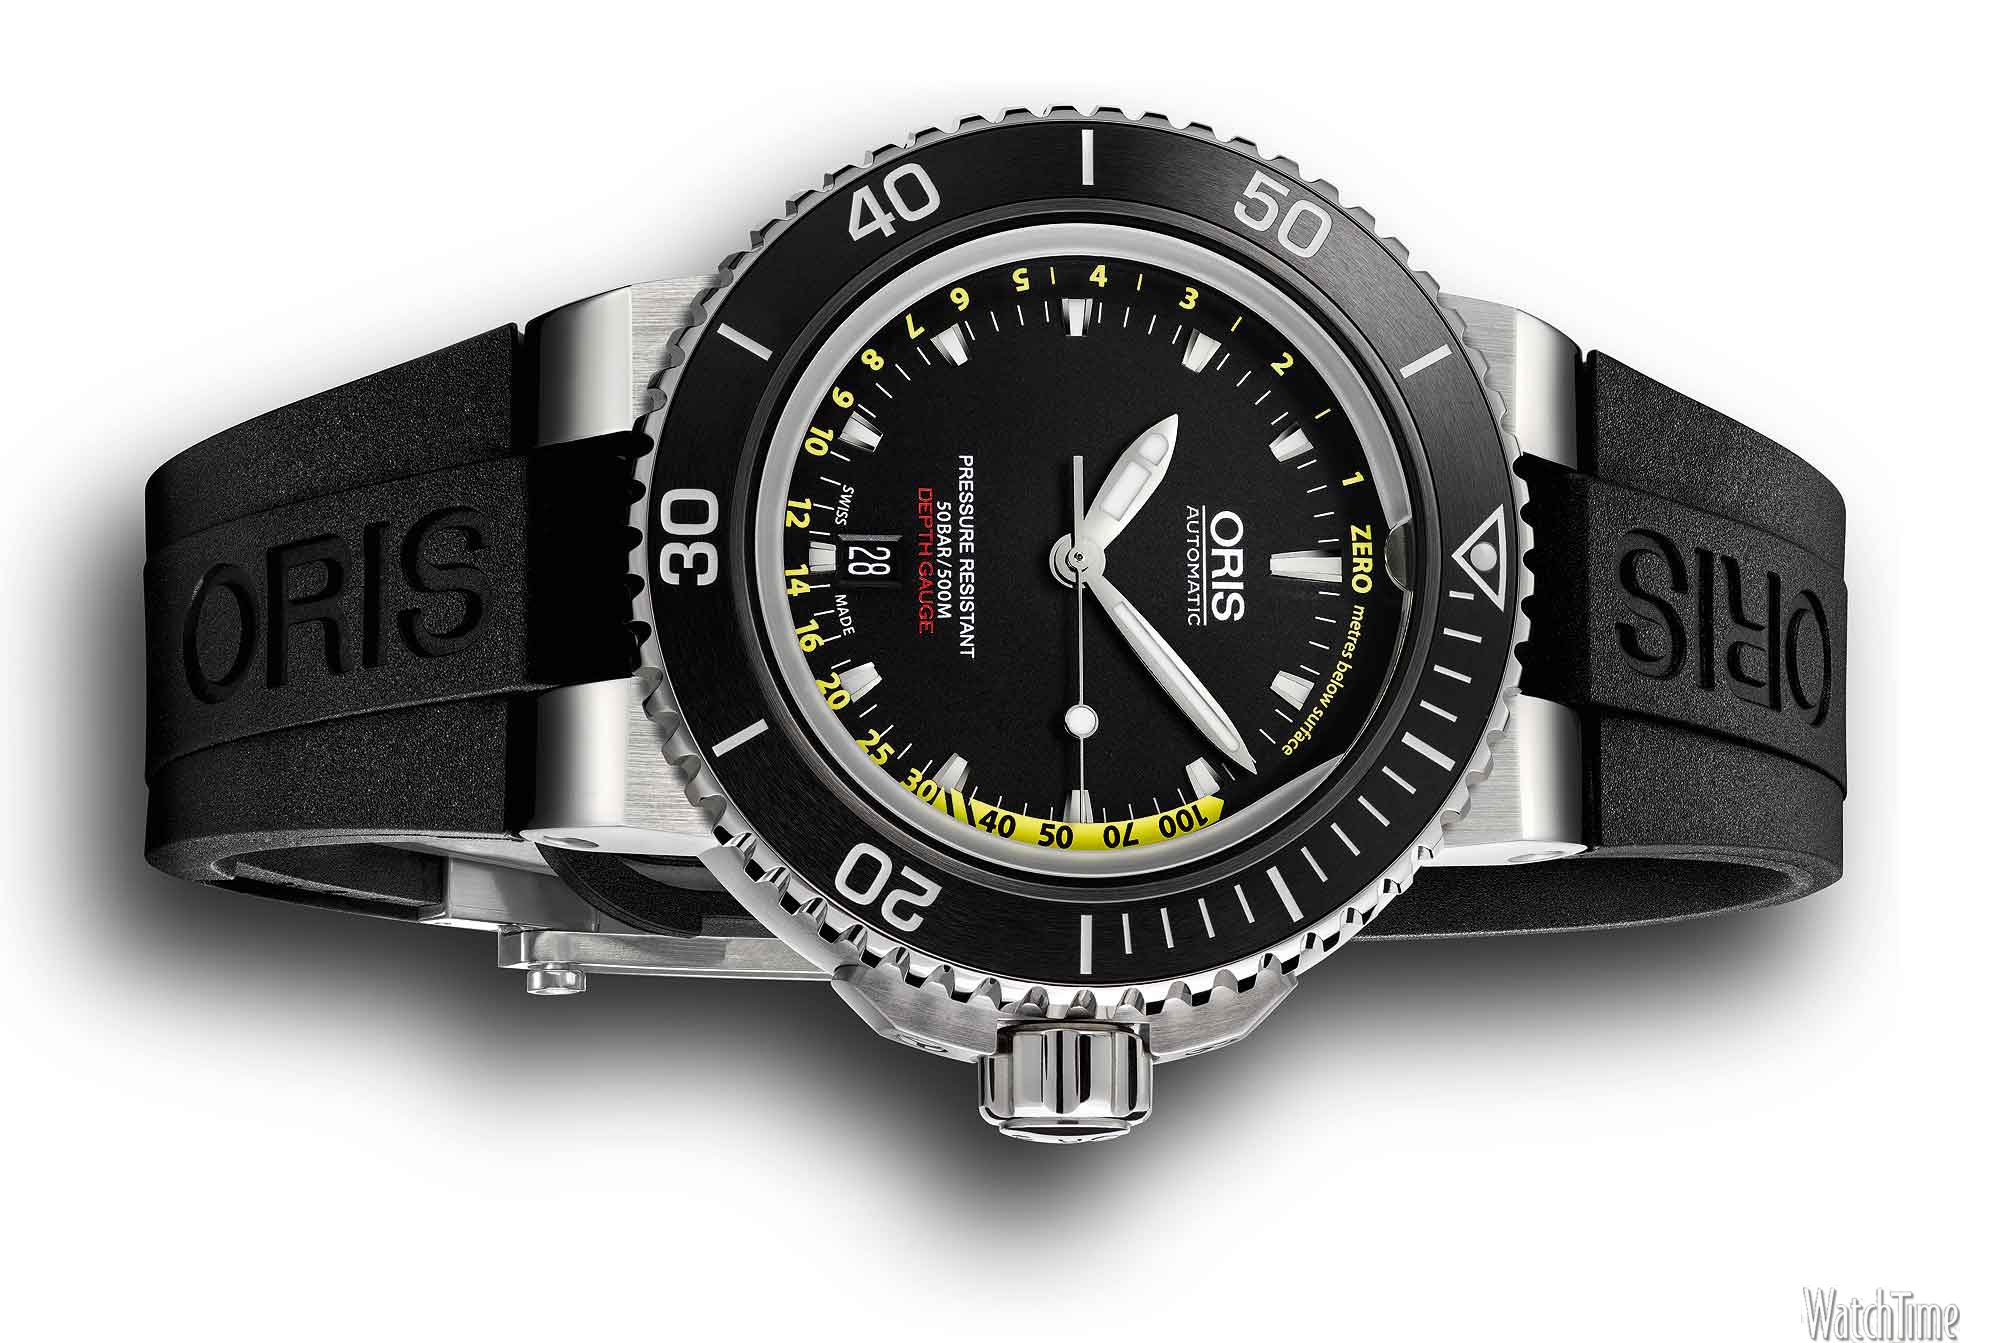 Front of Oris Aquis depth Gauge diving watch